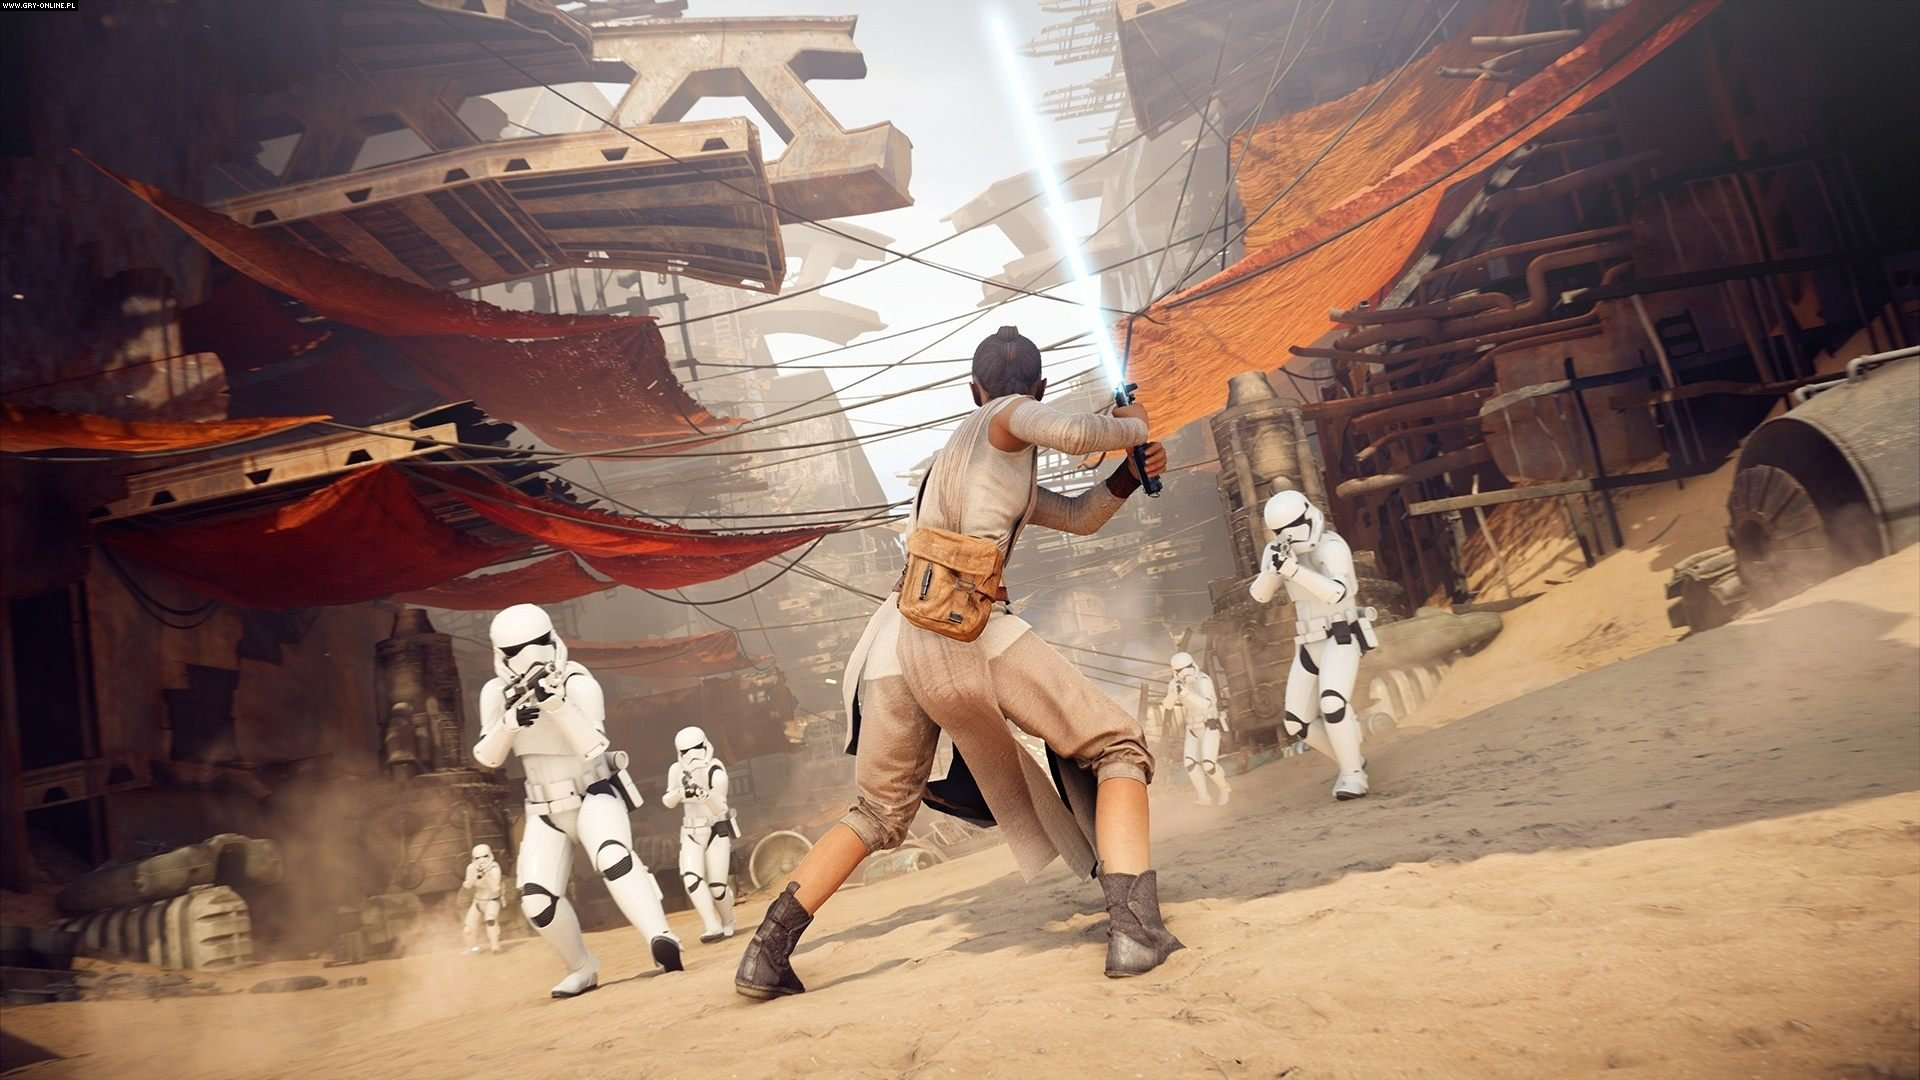 Star Wars: Battlefront II PC, PS4, XONE Games Image 9/32, EA DICE / Digital Illusions CE, Electronic Arts Inc.